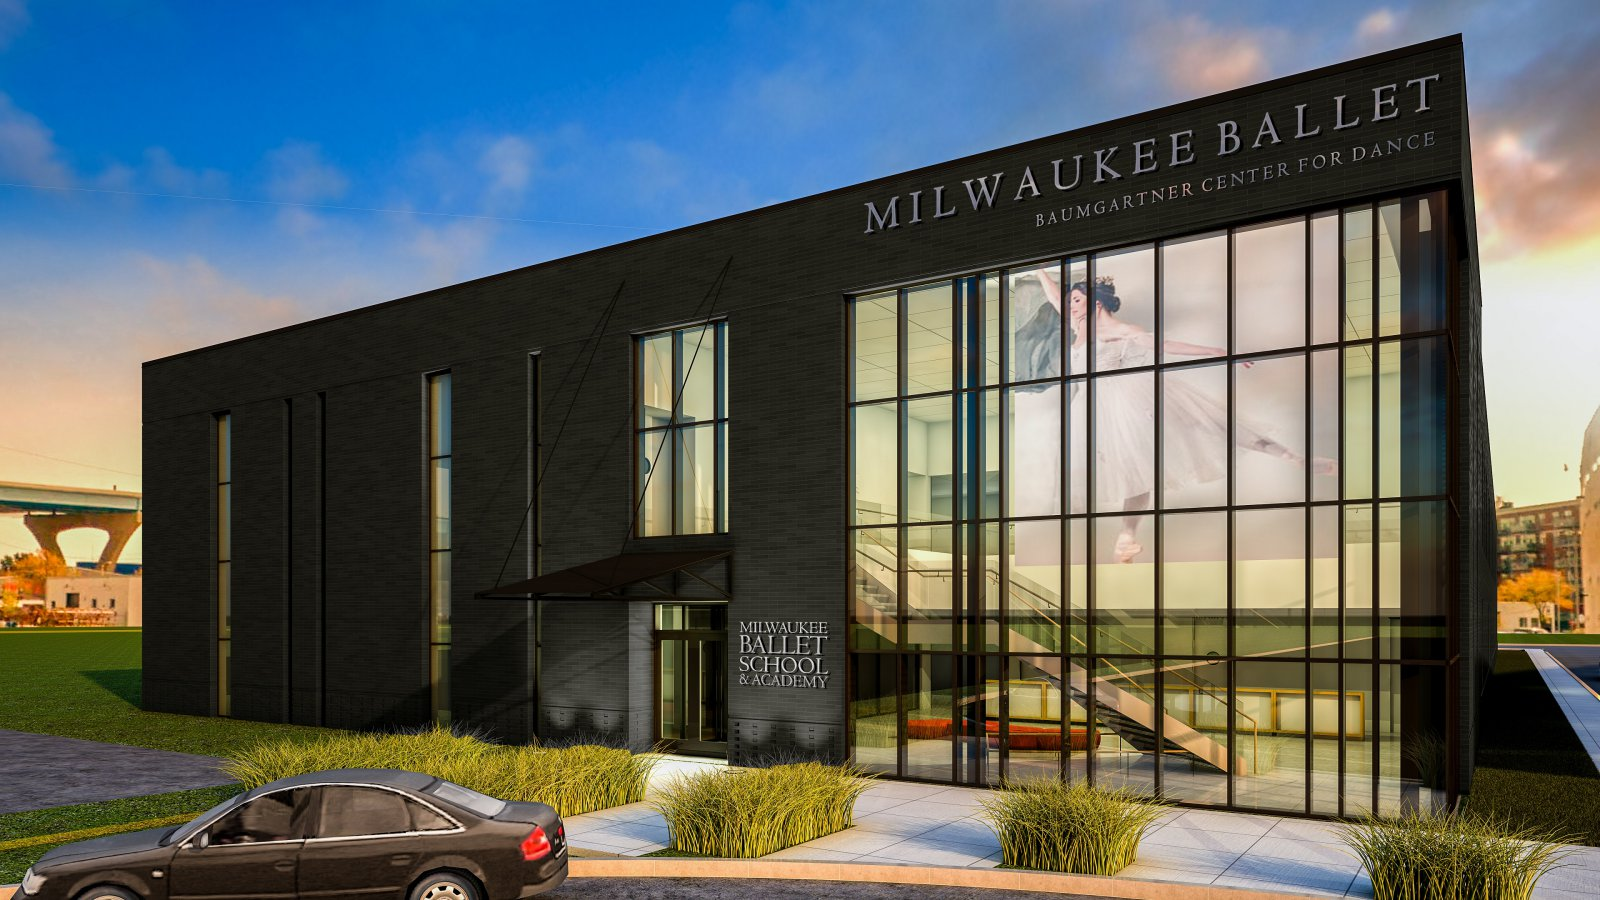 Milwaukee Ballet Baumgartner Center for Dance Rendering